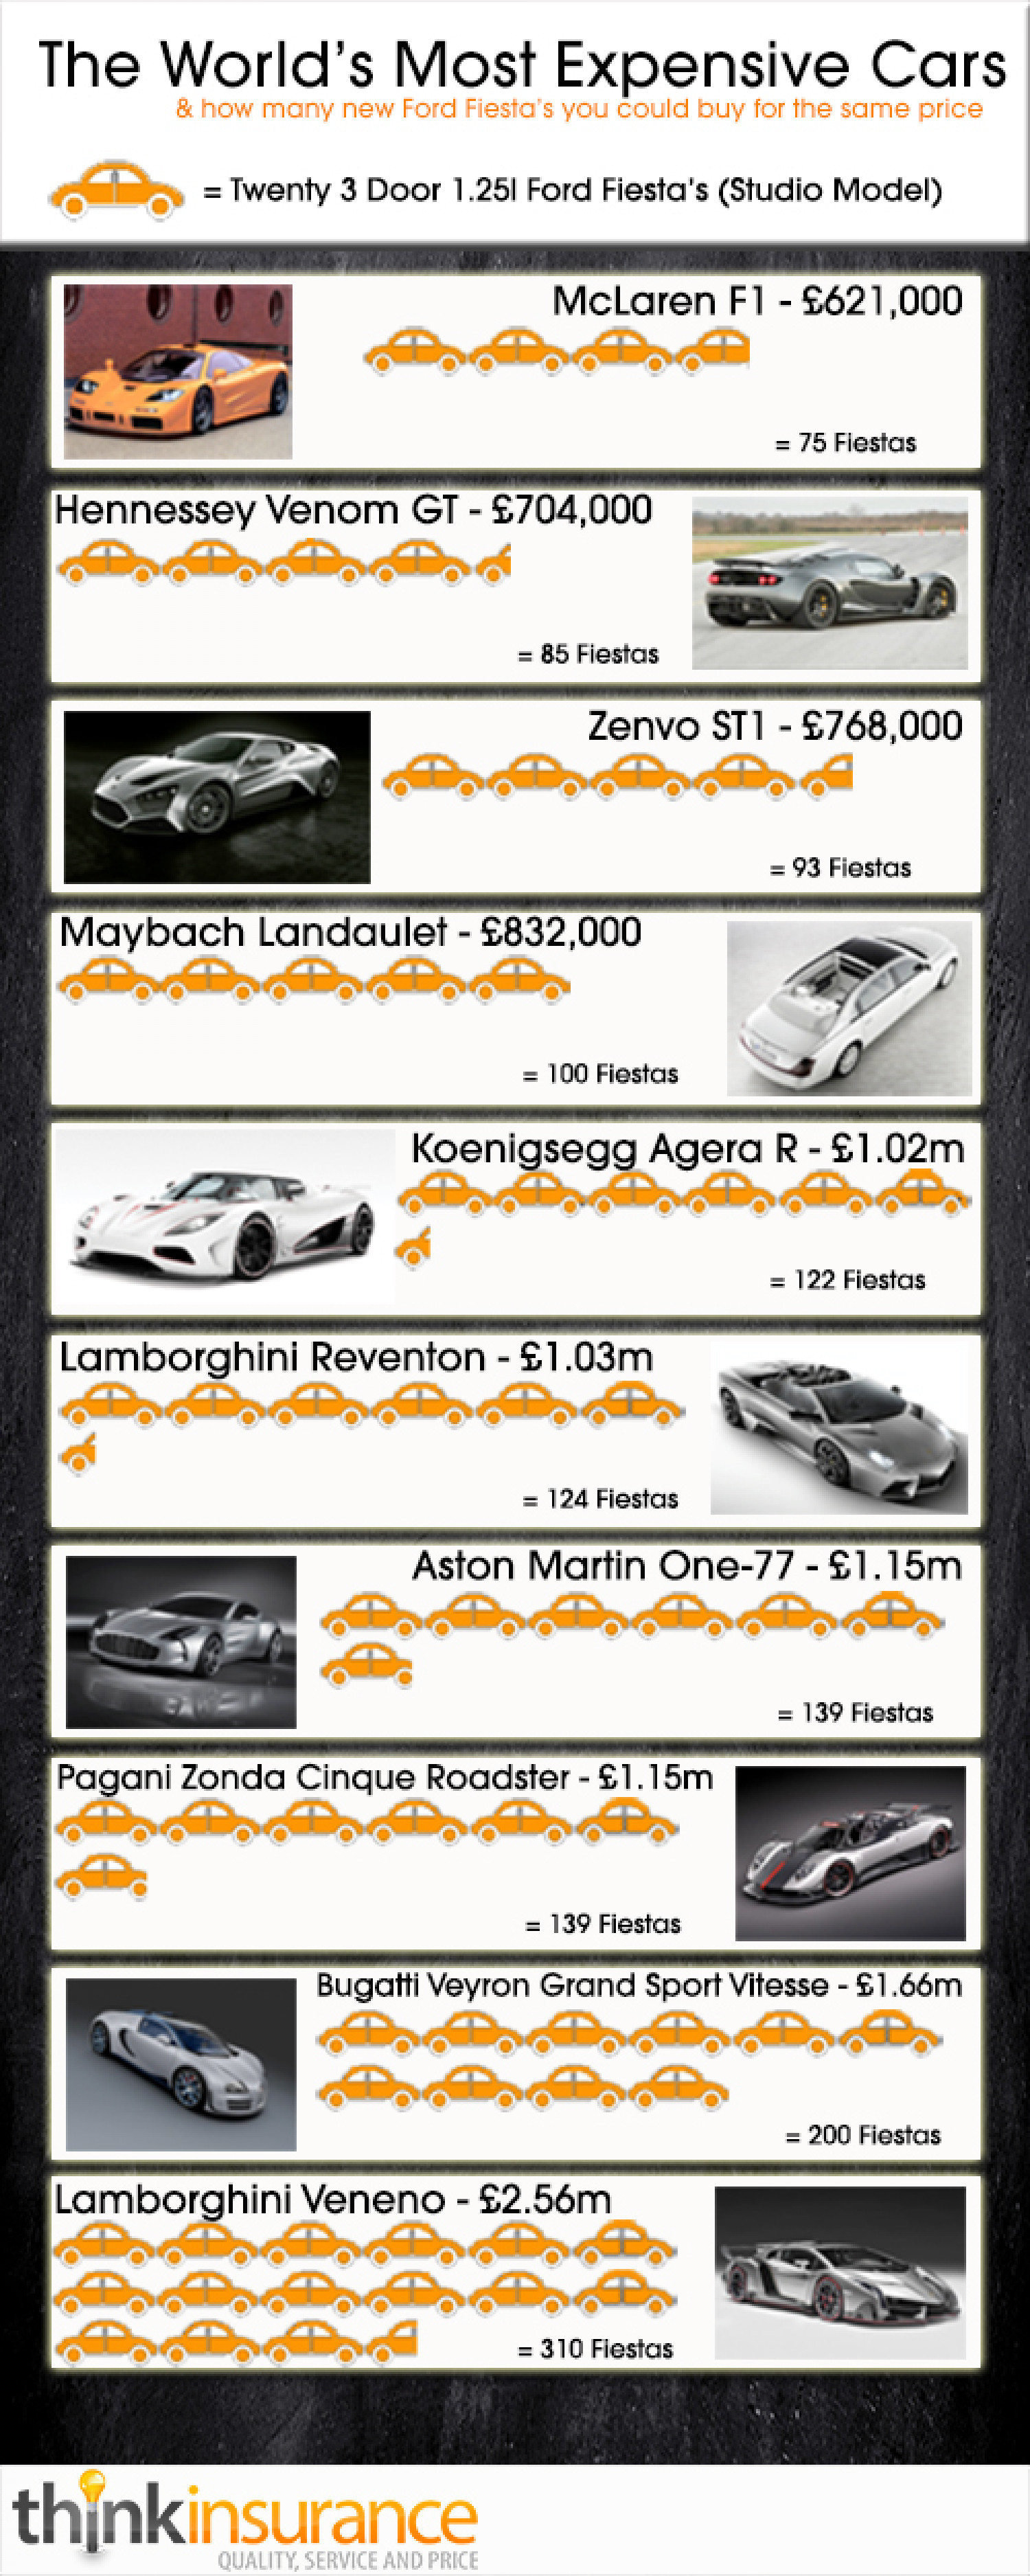 Most Expensive Cars In The World (& Equivalent Number Of Ford Fiesta's) Infographic